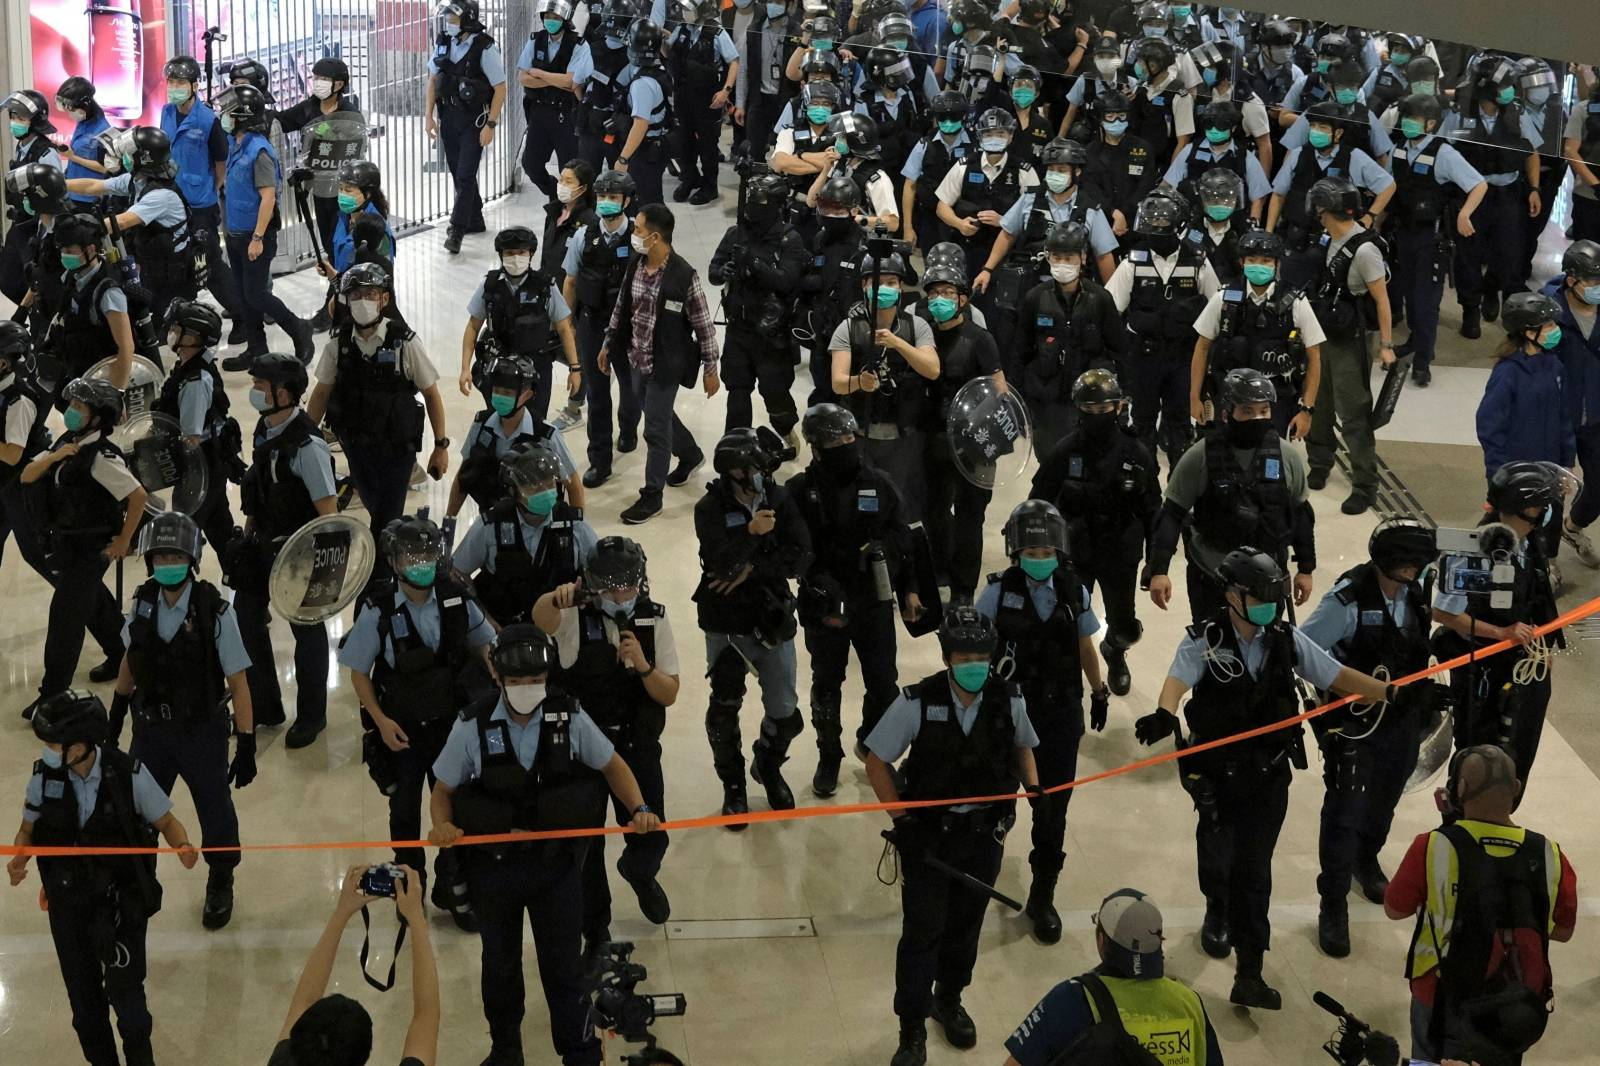 Police officers wearing face masks to avoid the spread of the coronavirus disease (COVID-19) disperse anti-government protesters from a shopping mall during a rally in Hong Kong